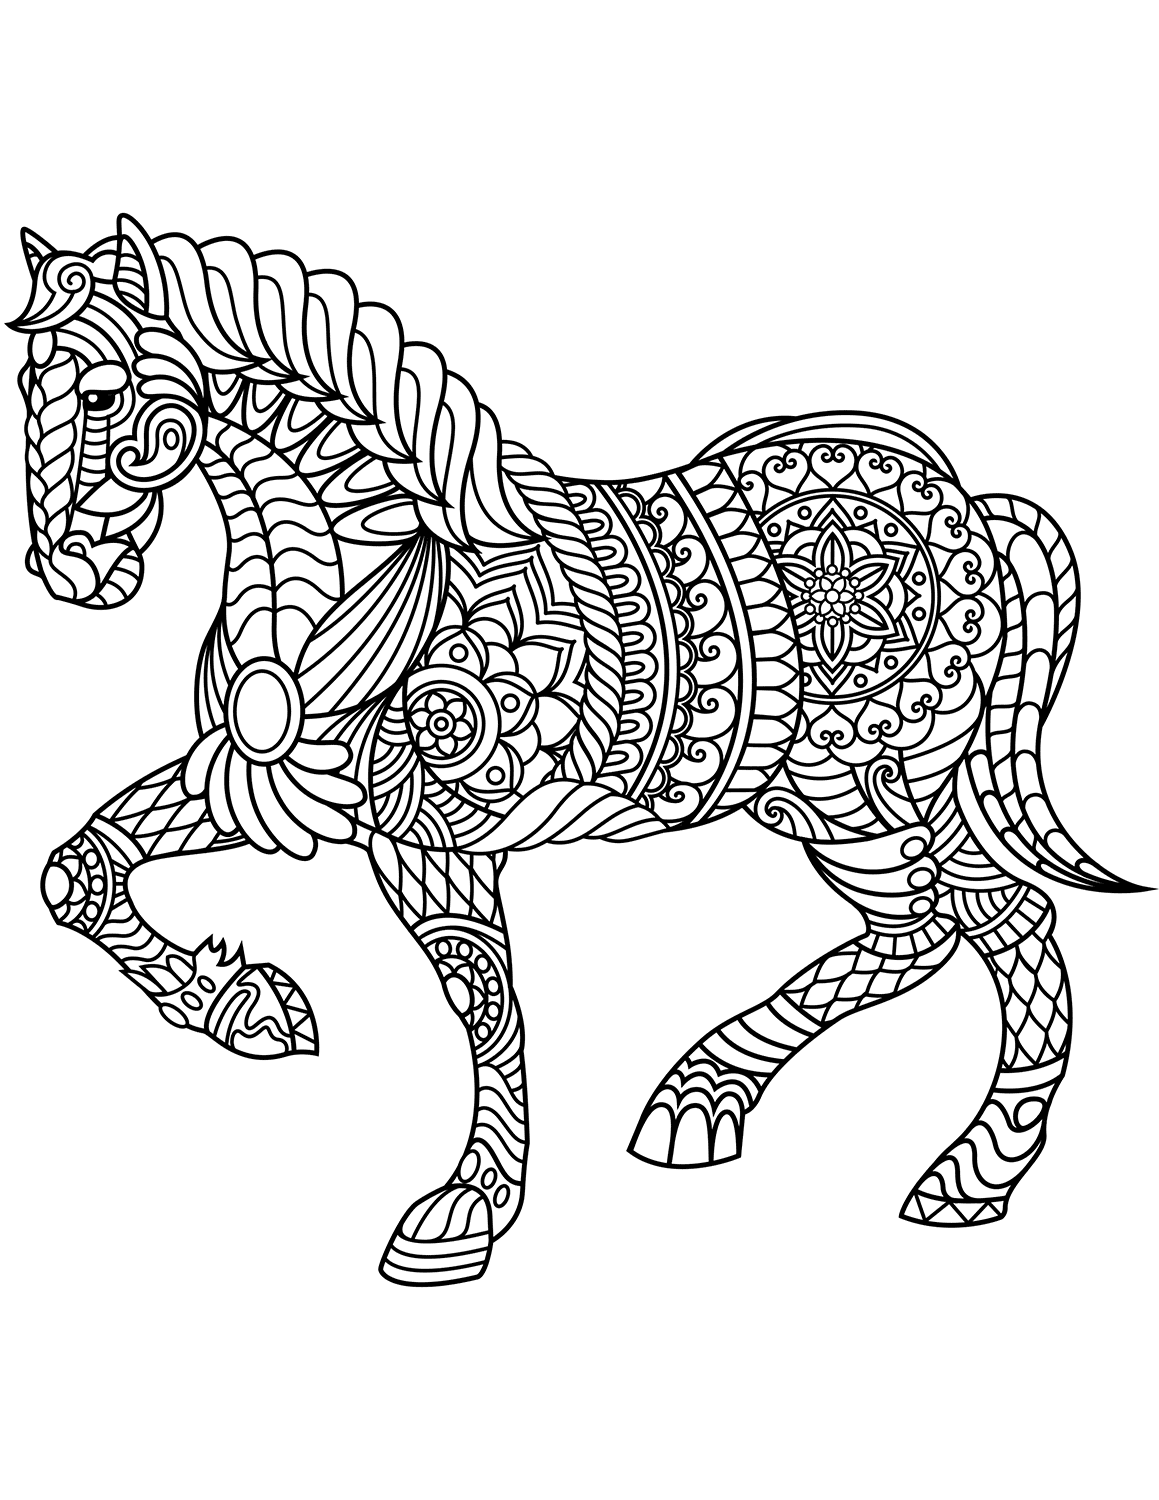 animal coloring pages free cute jungle animals coloring page pages free animal coloring